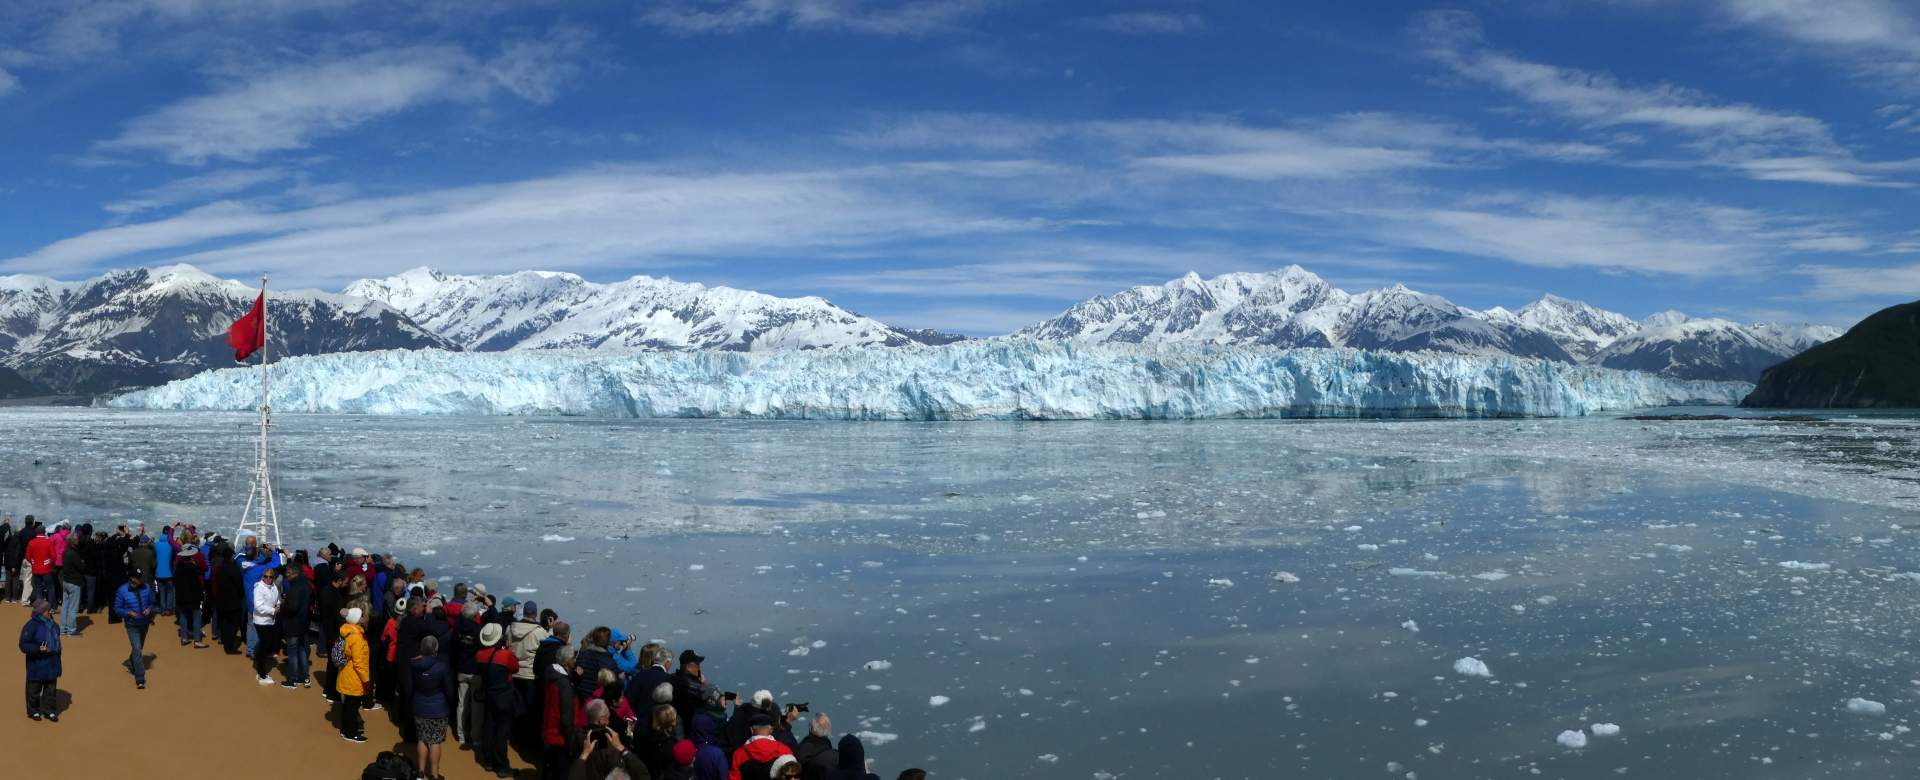 Hubbard glacier from the Cunnard Queen Elizabeth © P Curtis 2019